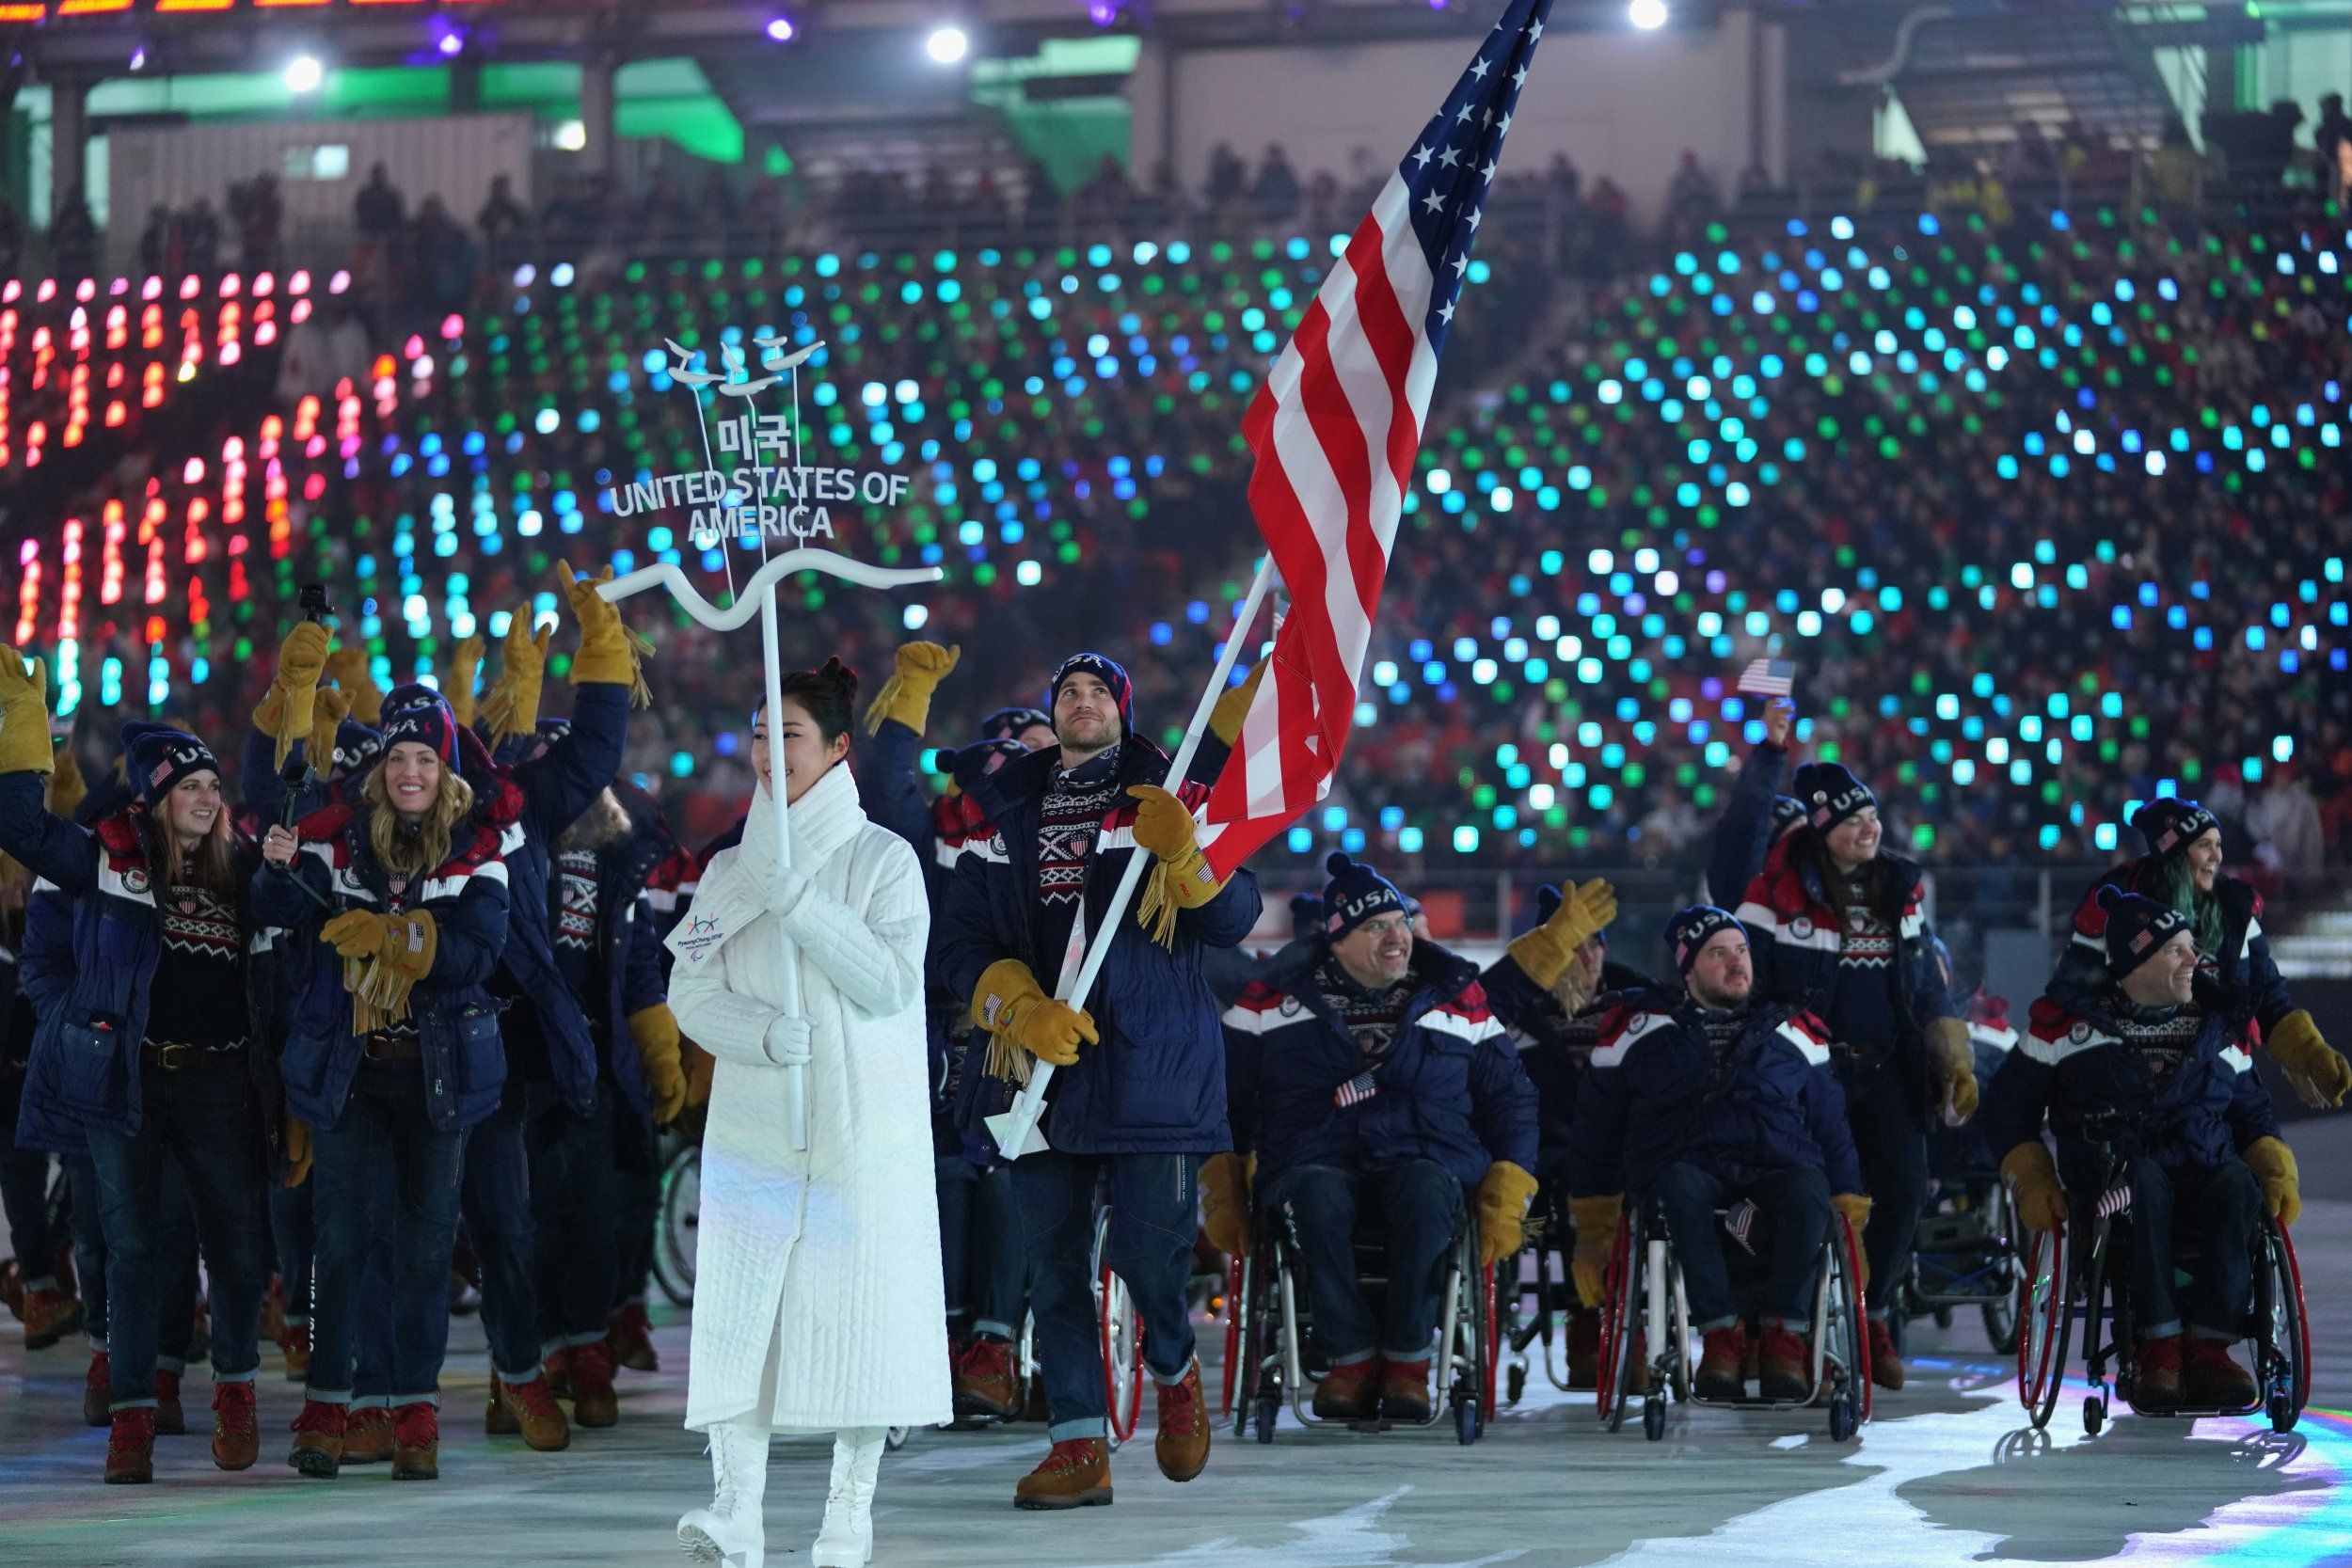 paralympics 2018 games google doodle  facts about the